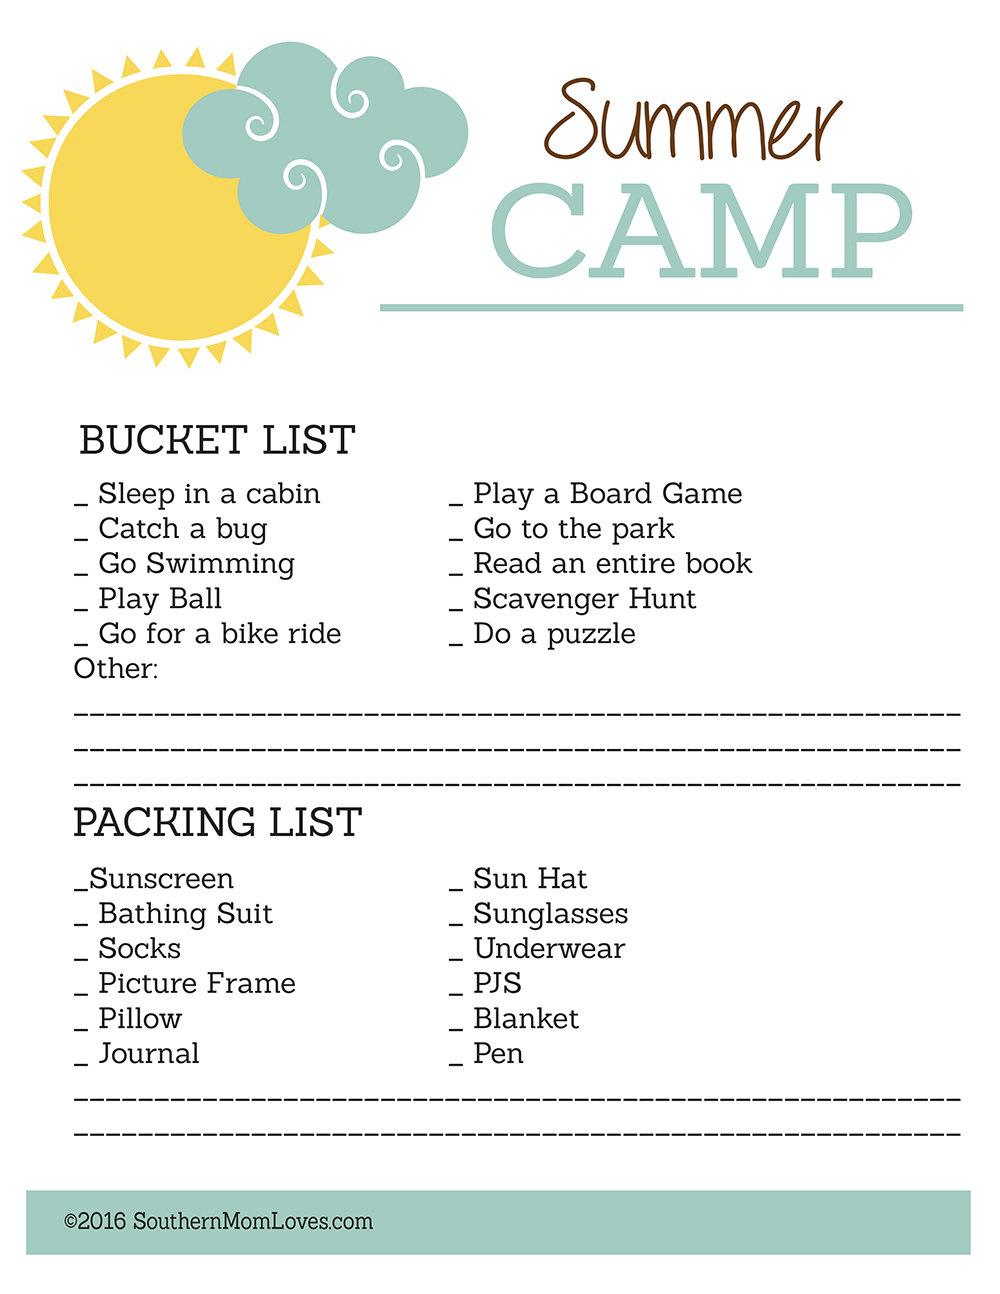 3c33f2a4c266 Southern Mom Loves: FREE Summer Camp Printables for Kids!